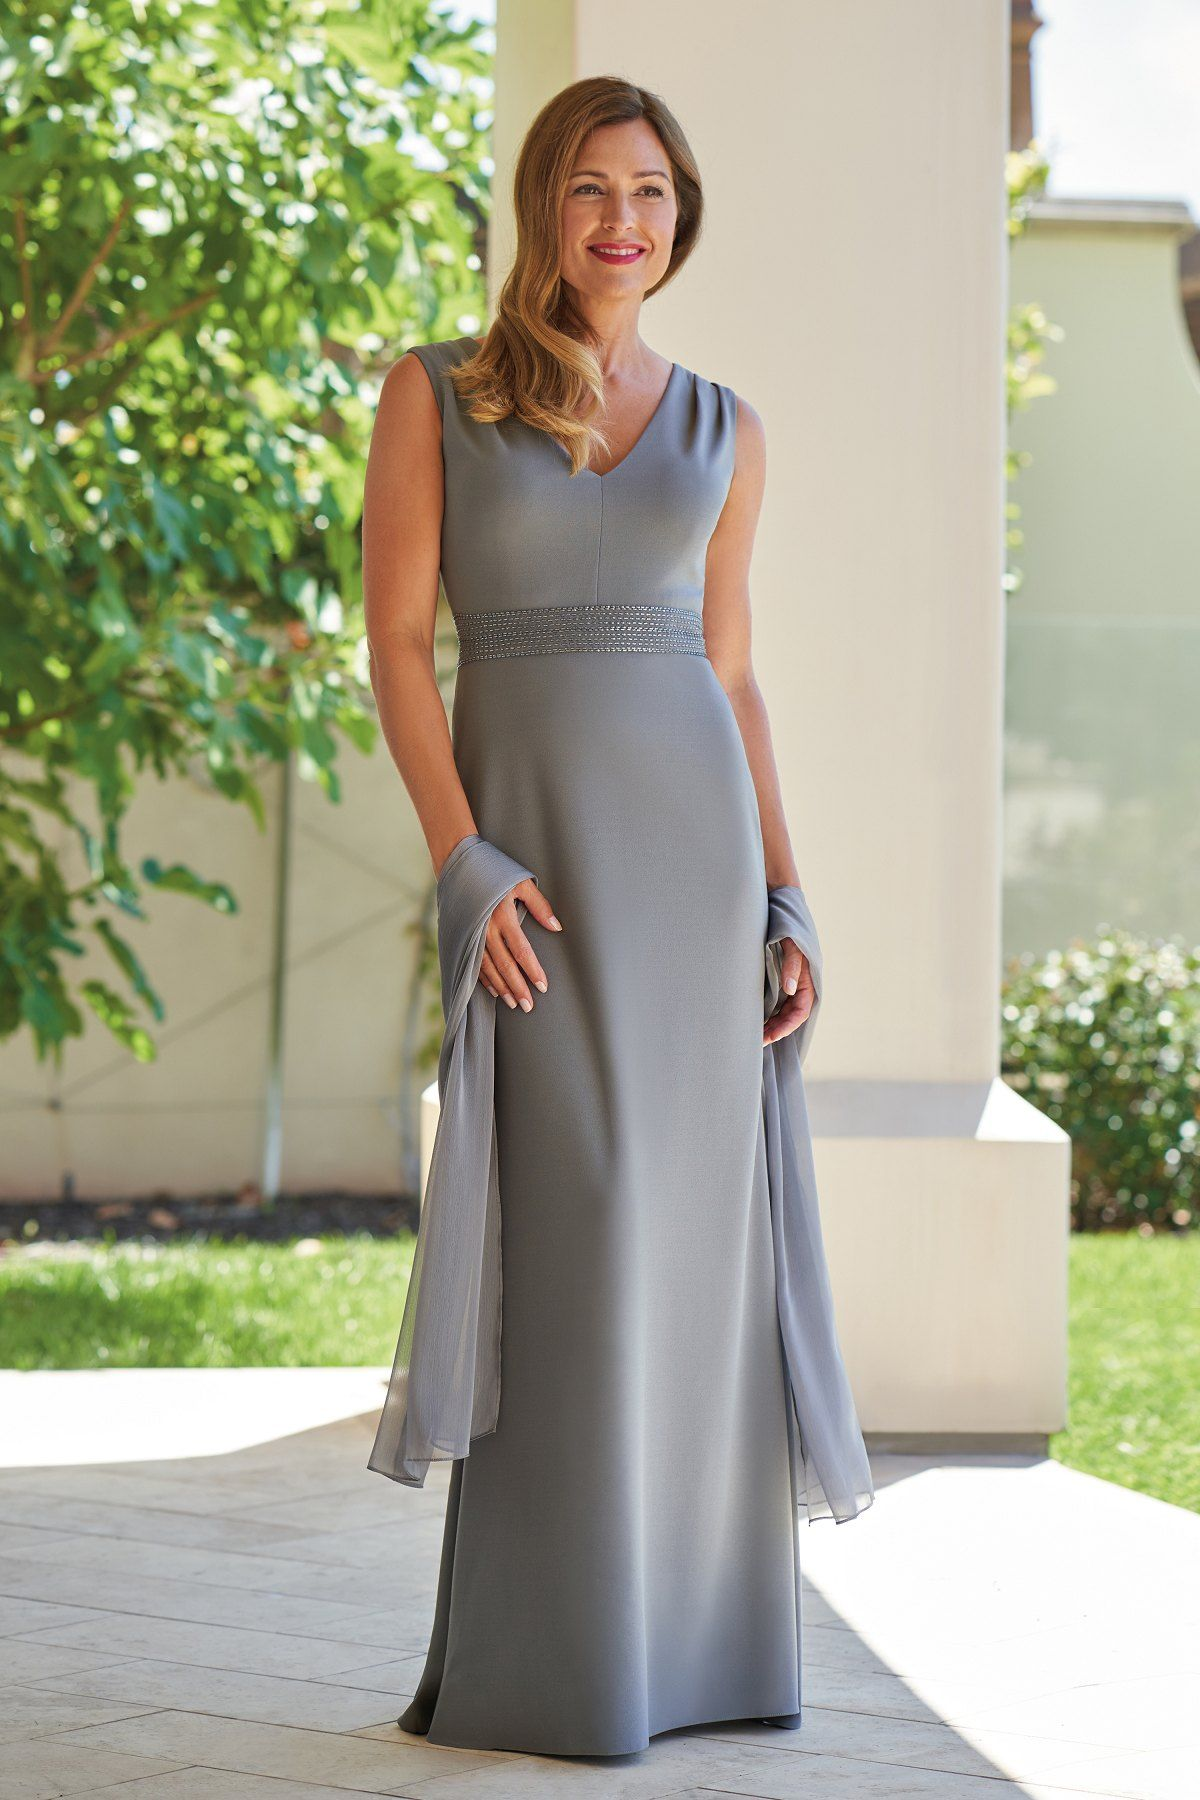 50++ Try on mother of the bride dresses at home ideas in 2021